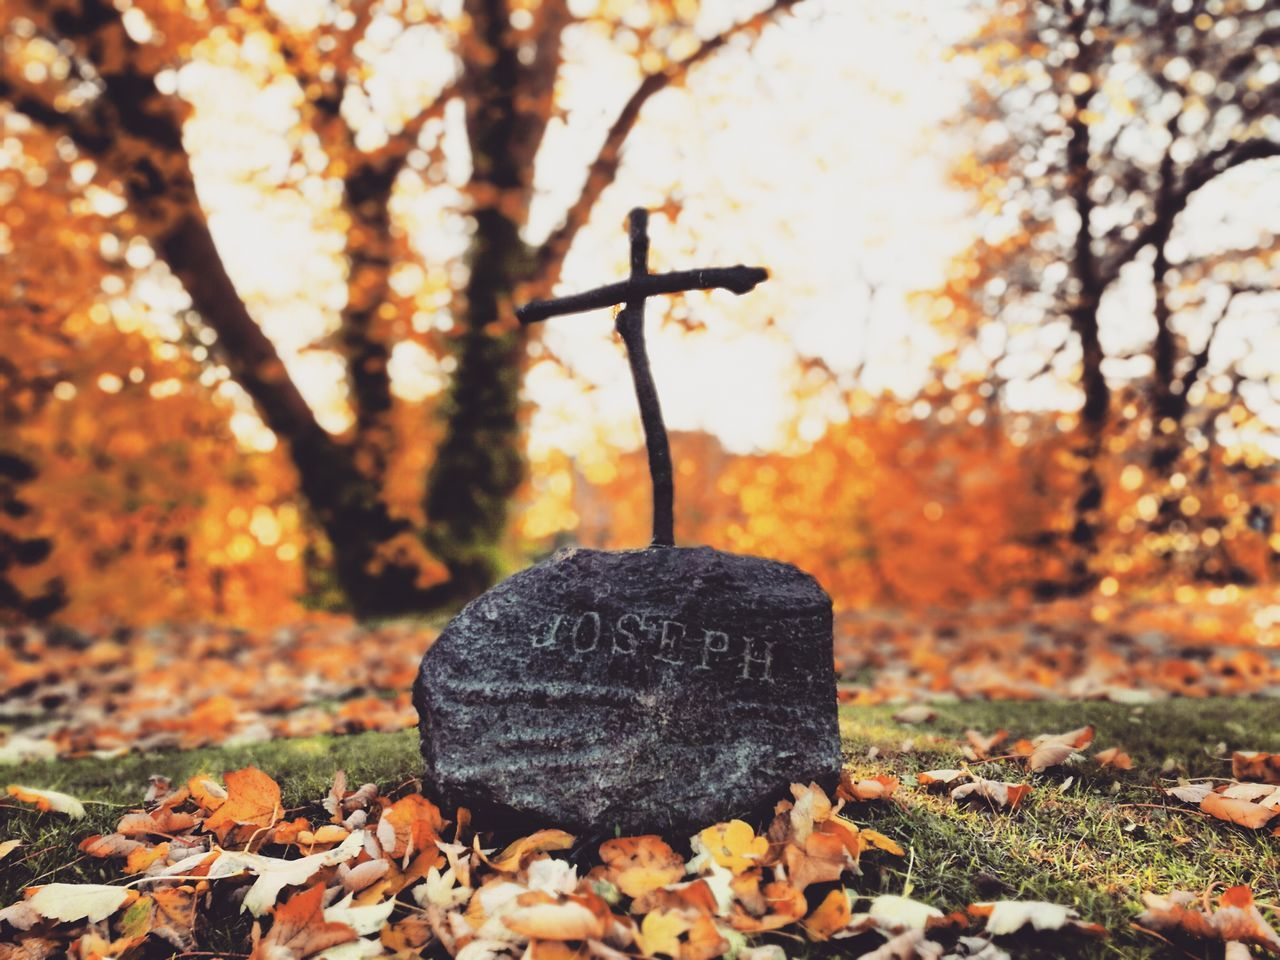 My Year My View Autumn Nature Focus On Foreground Outdoors Tree Leaf No People Close-up Sunlight Freshness Day HuaweiP9Photography Czech HuaweiP9 Huaweiphotography Huawei P9 Leica Beauty In Nature Tree Growth Grave Graveyard Graveyard Beauty Gravestone Cementery